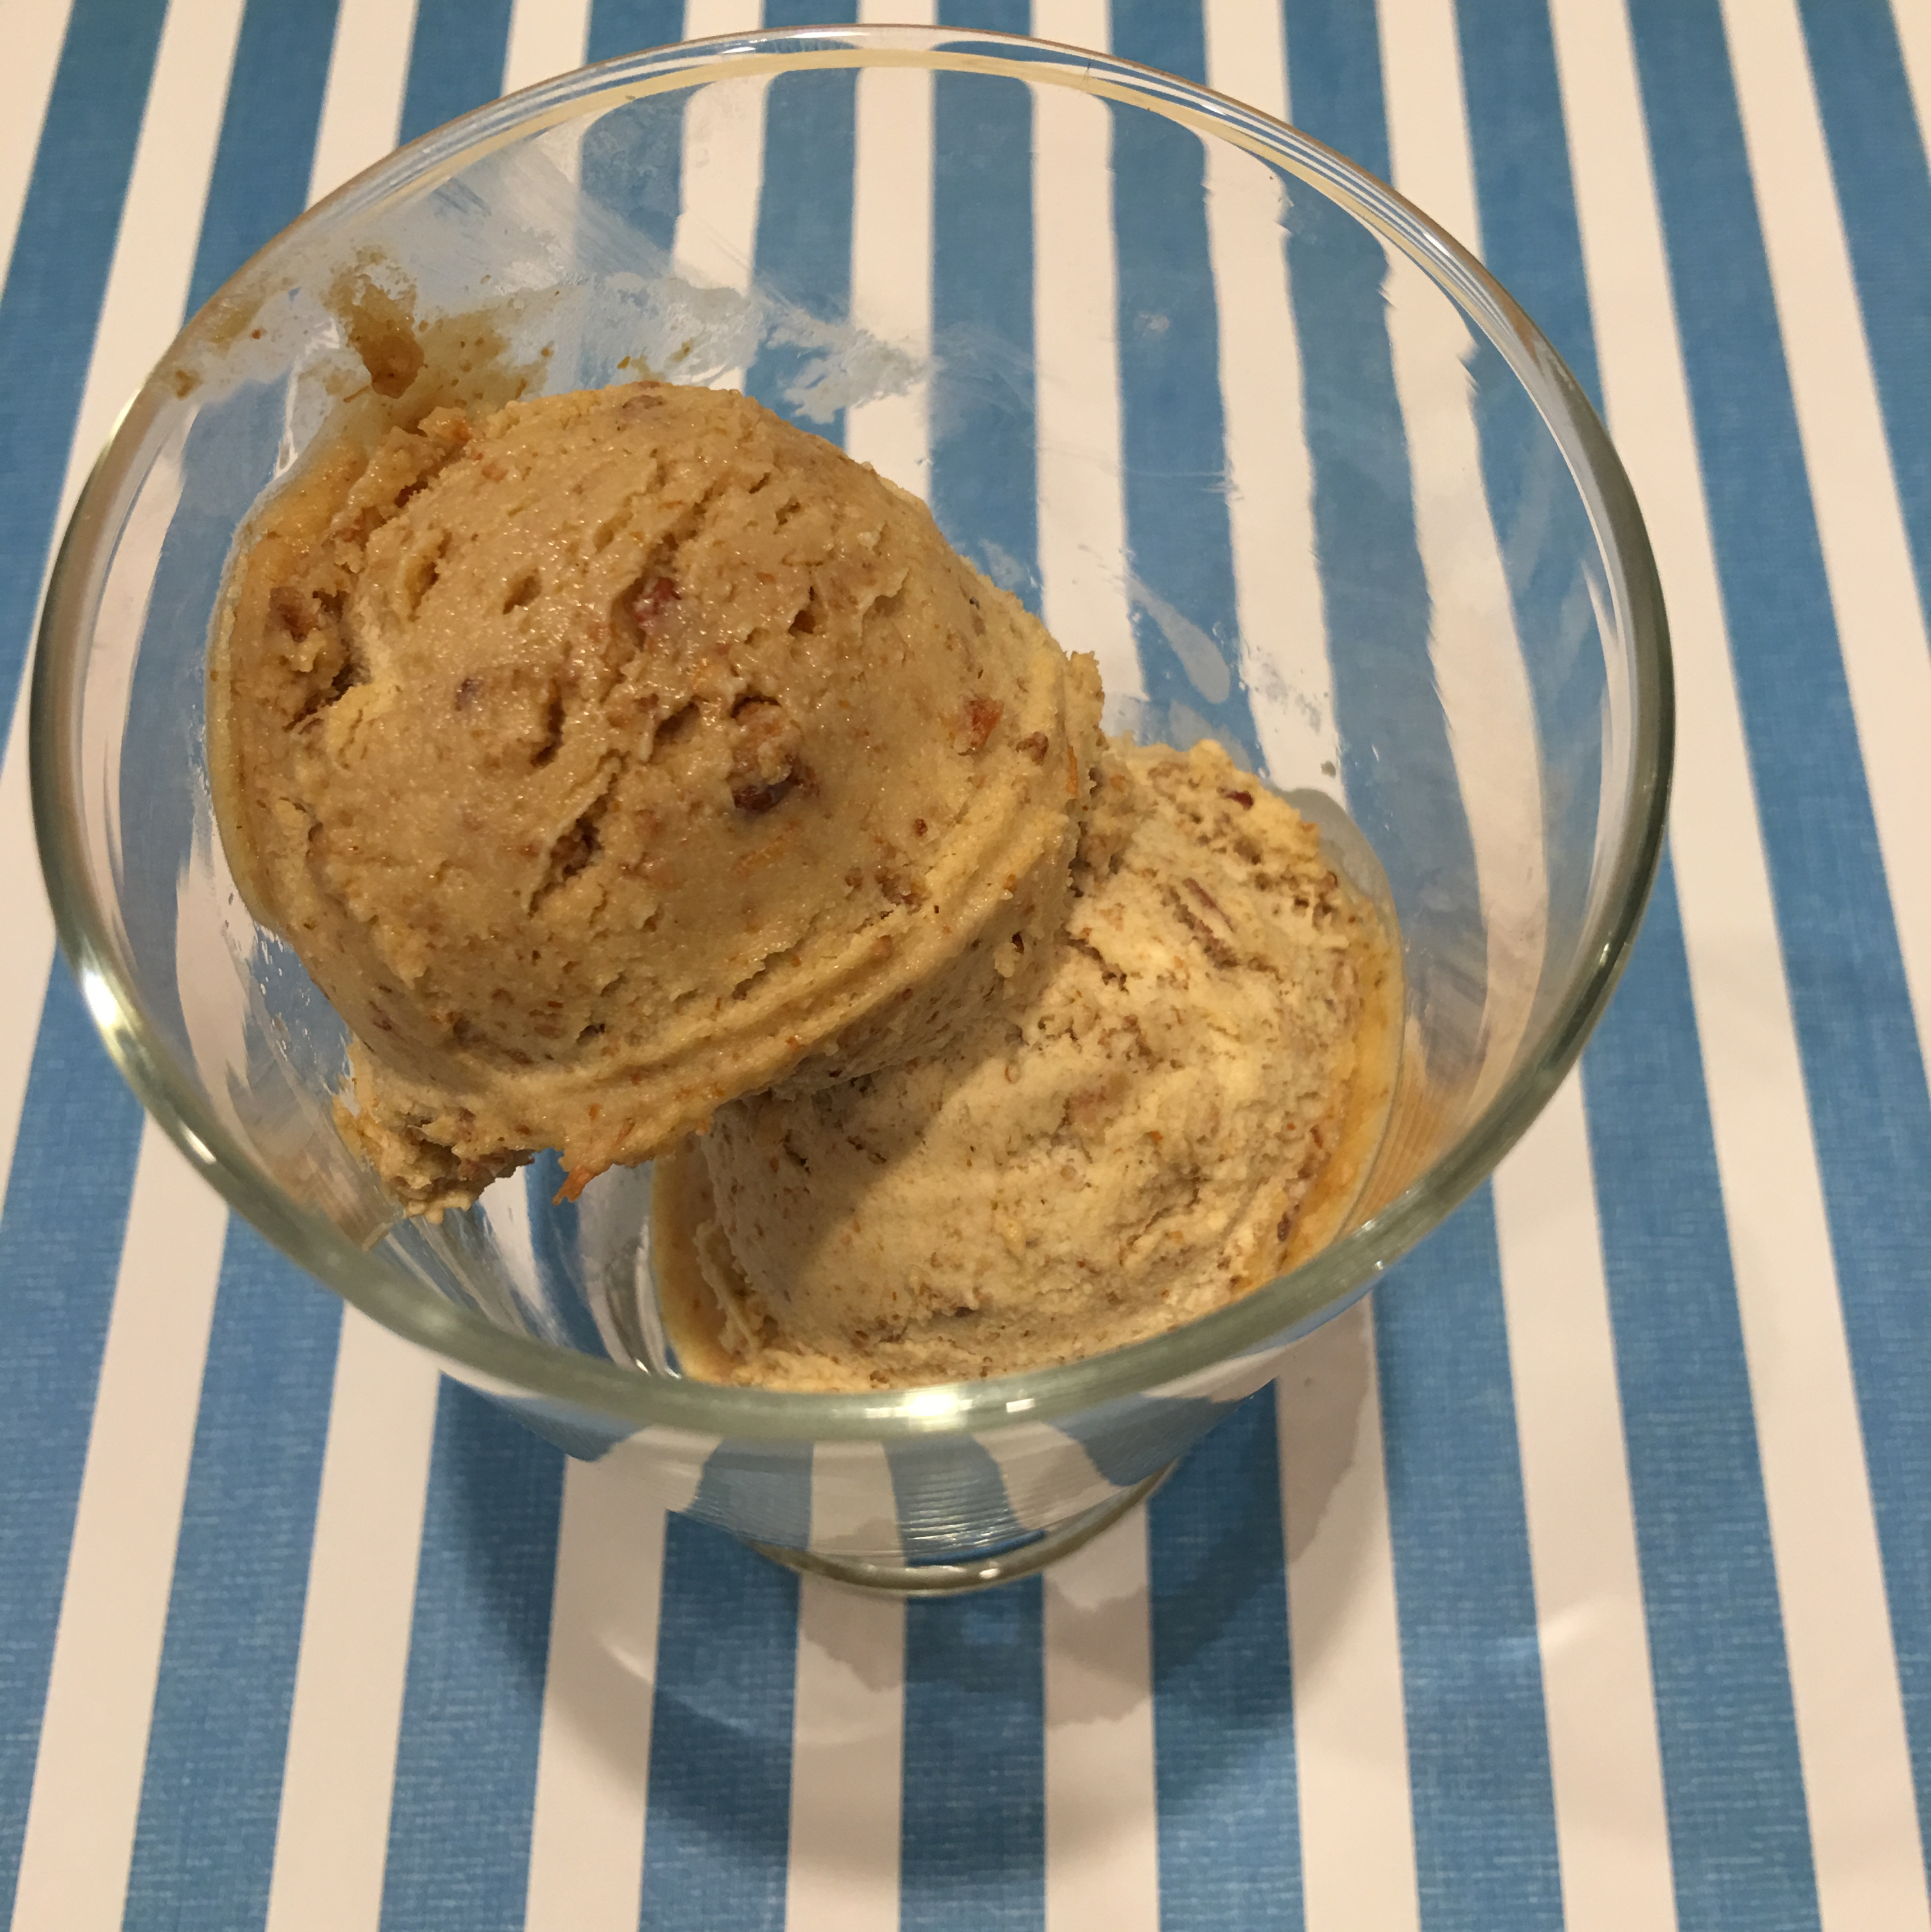 Free and Friendly Foods Maple Bacon Ice Cream